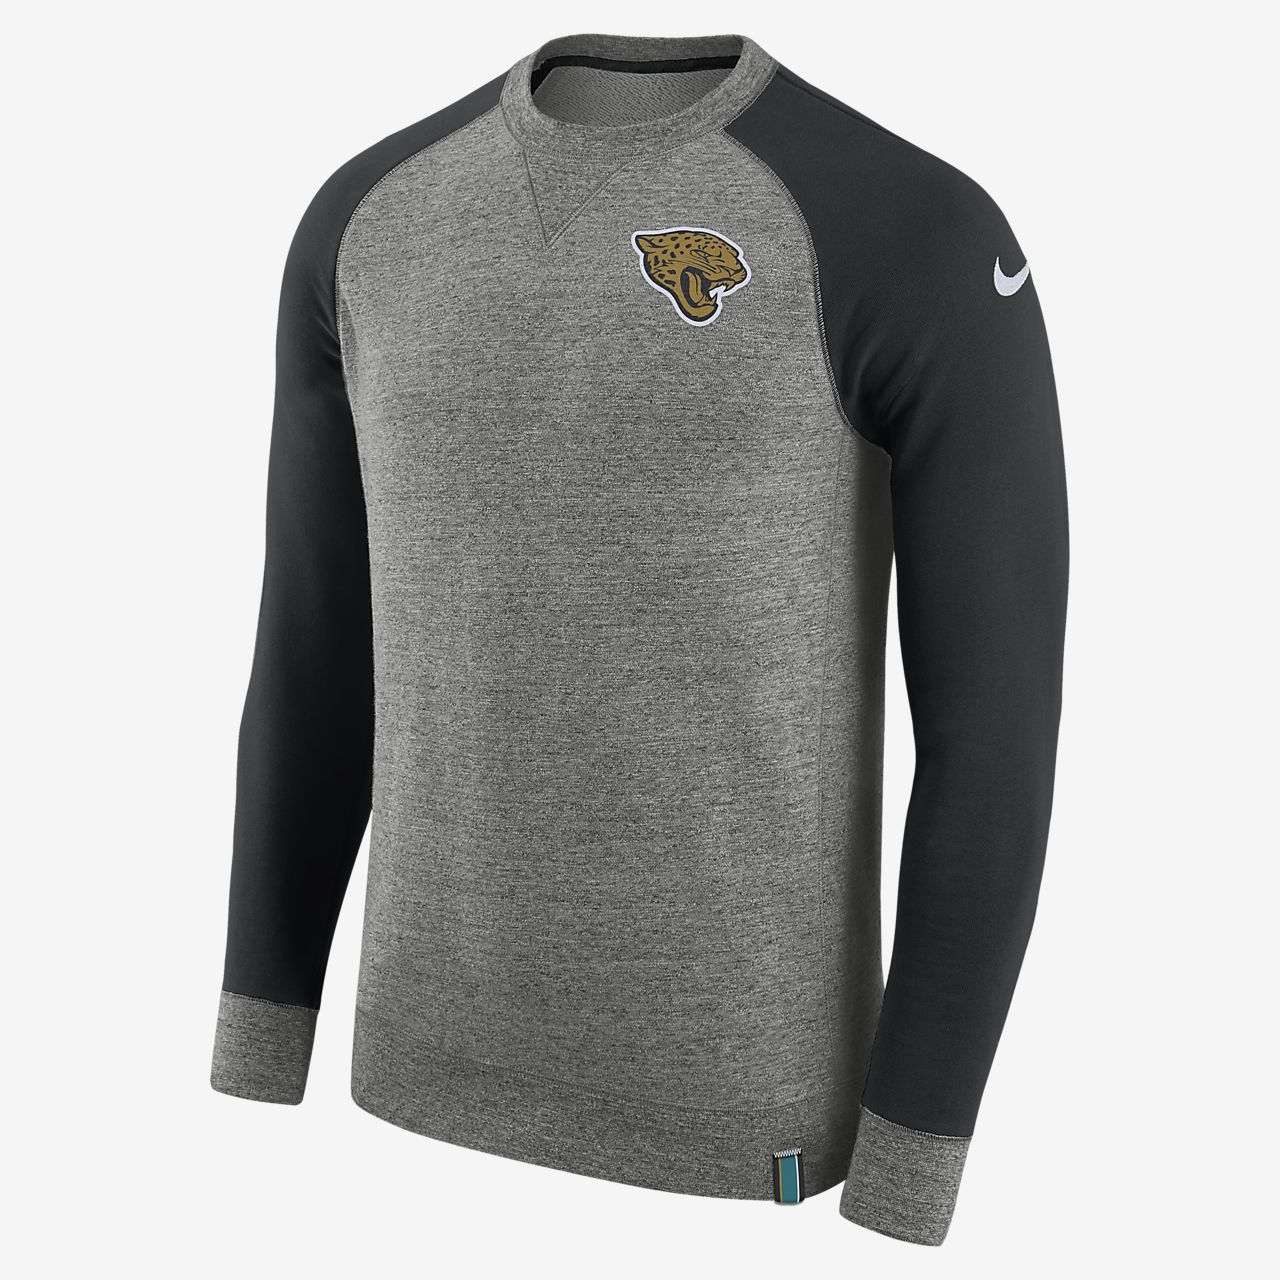 Sweat-shirt Nike AW77 (NFL Jaguars) pour Homme